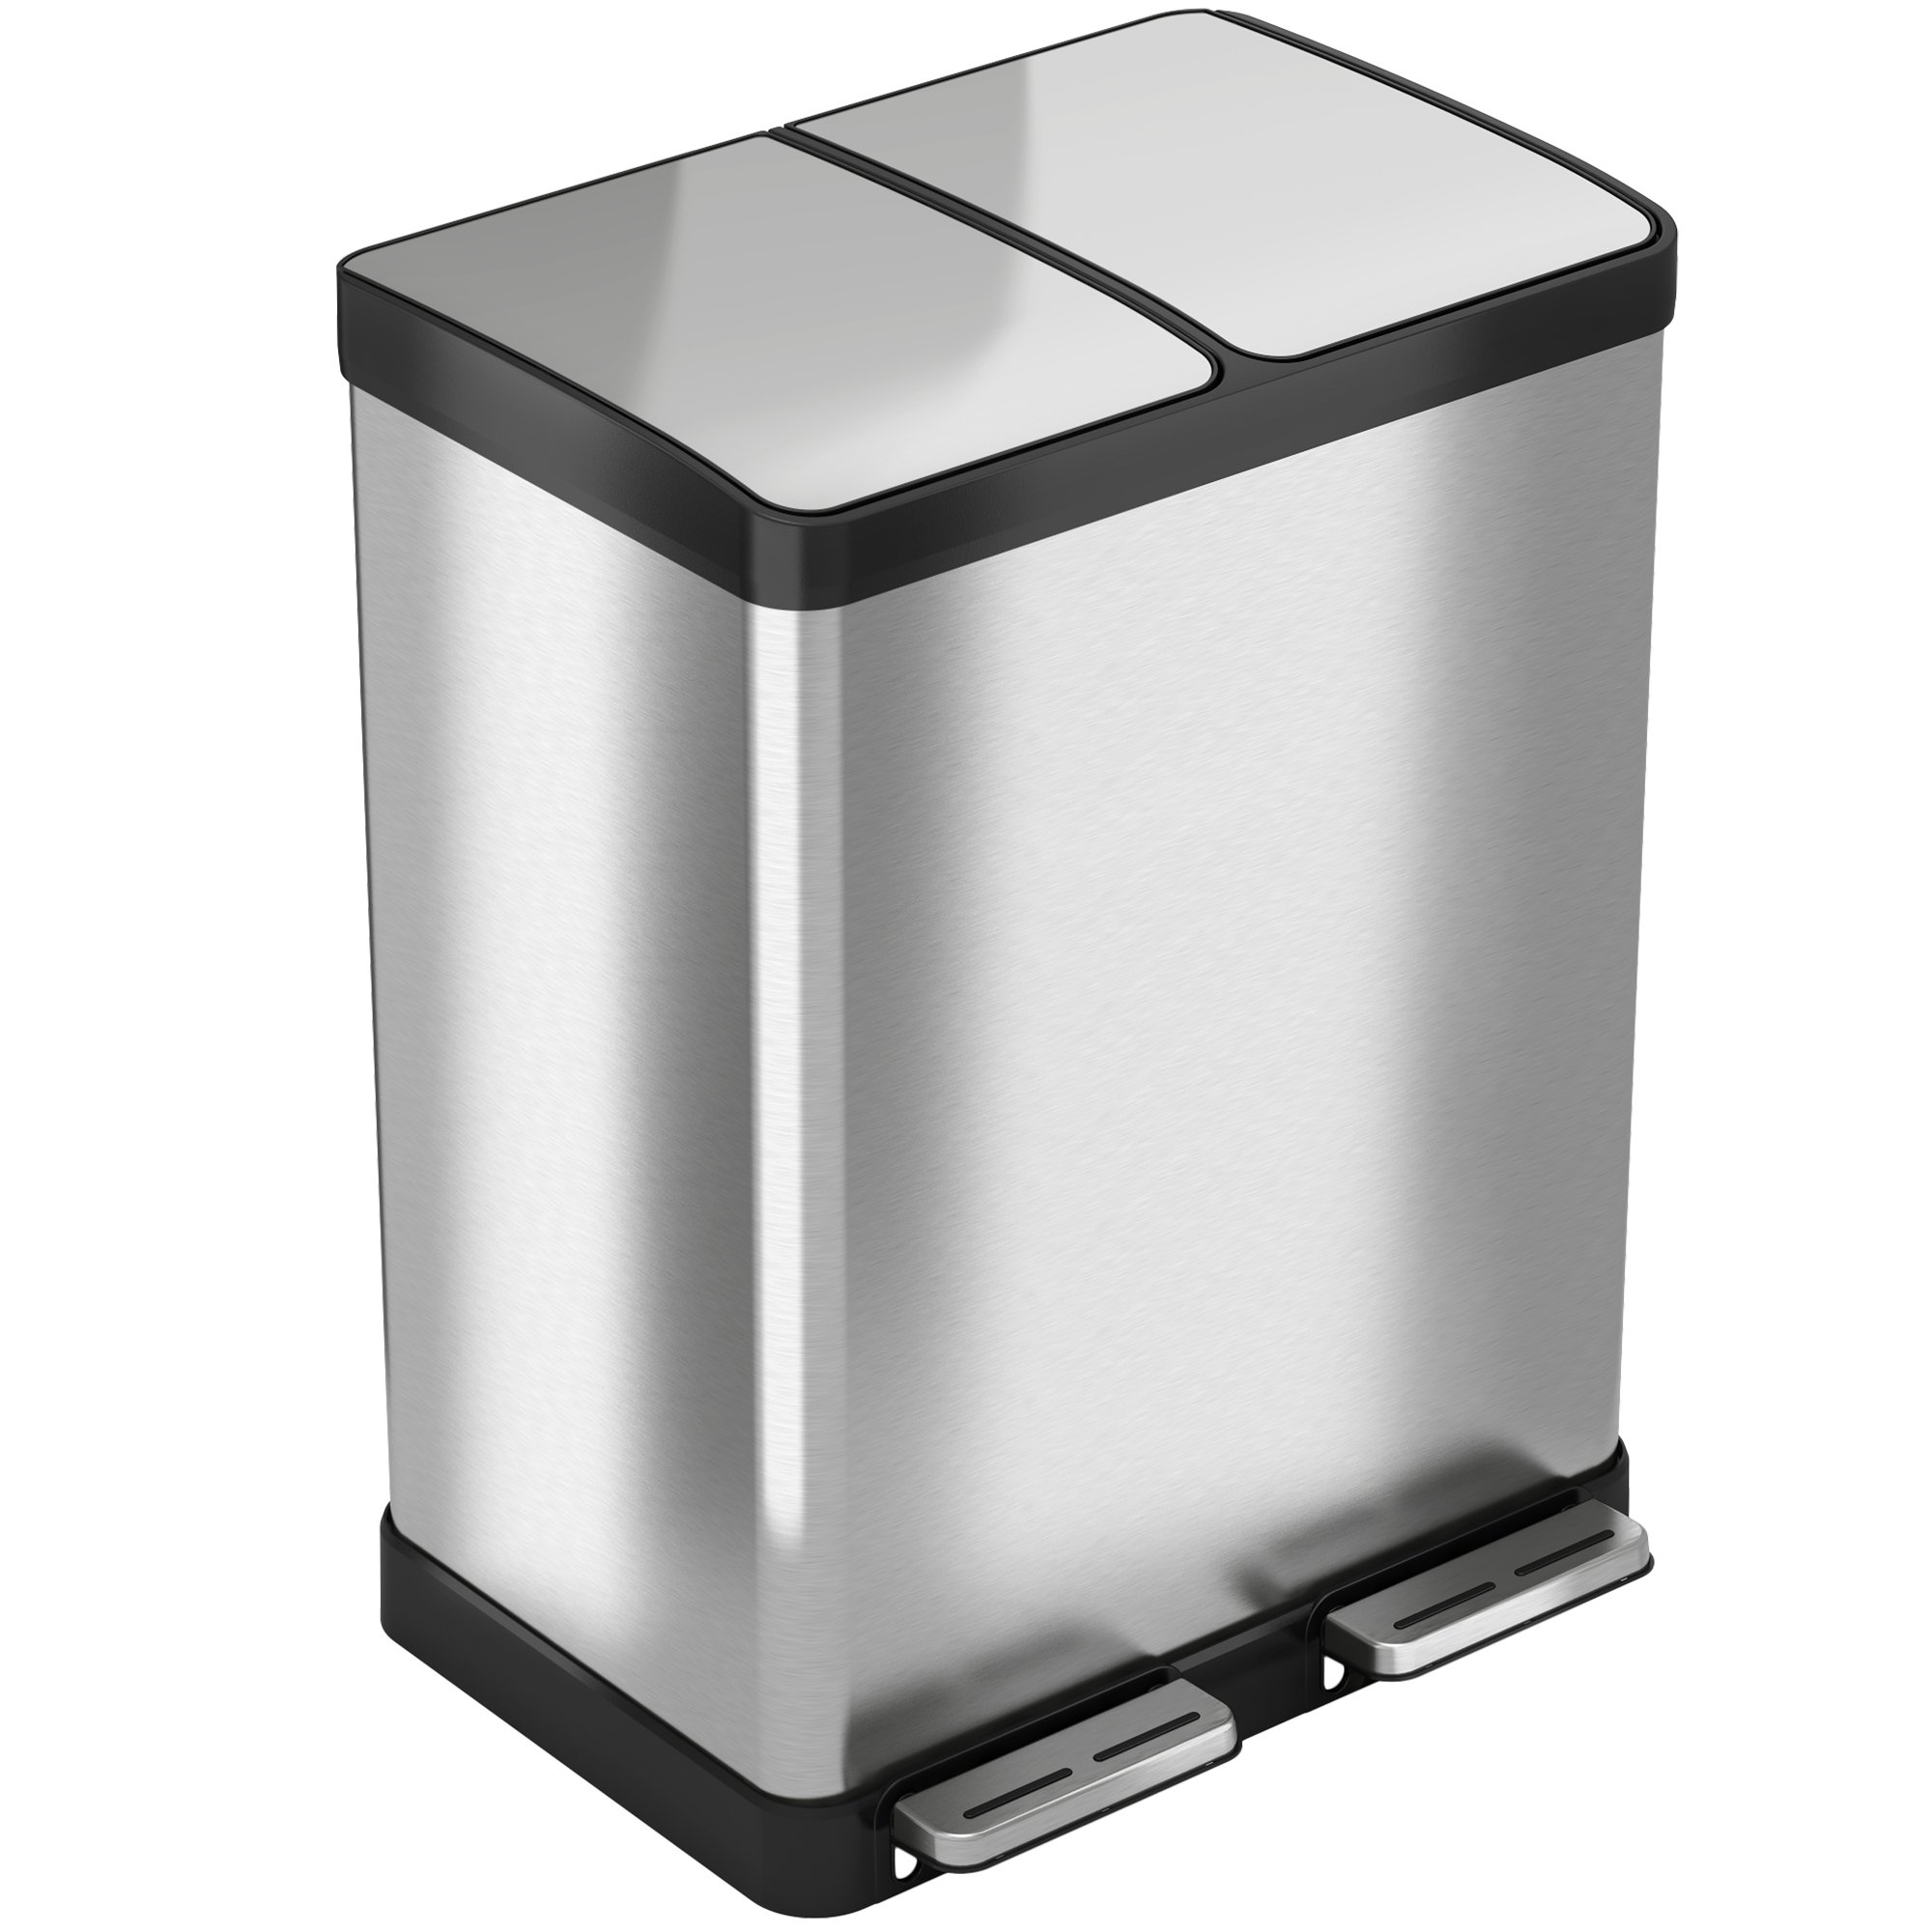 iTouchless SoftStep 16 Gallon Step Trash Can / Recycle Bin – 61 Liter Stainless Steel Kitchen Trash Can – 2 8-Gallon Removable Inner Buckets – Perfect for Kitchen, Office, Home